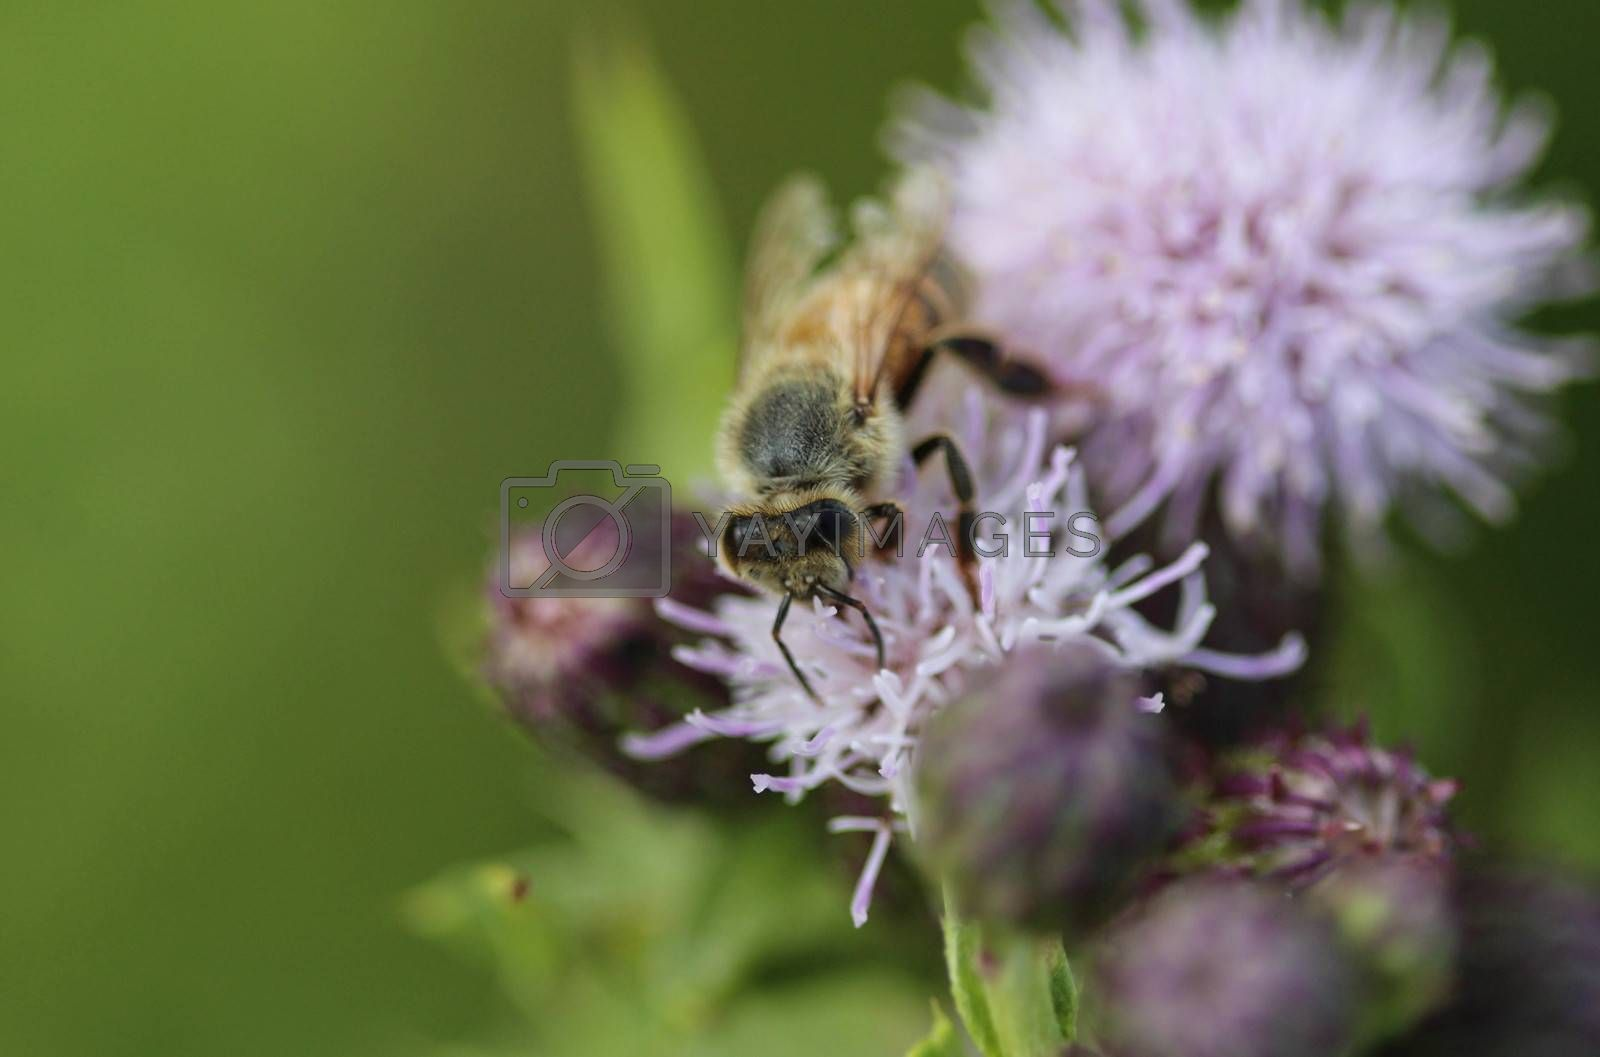 Royalty free image of western honey bee or European honey bee (Apis mellifera), on flower collecting nectar by michaelmeijer